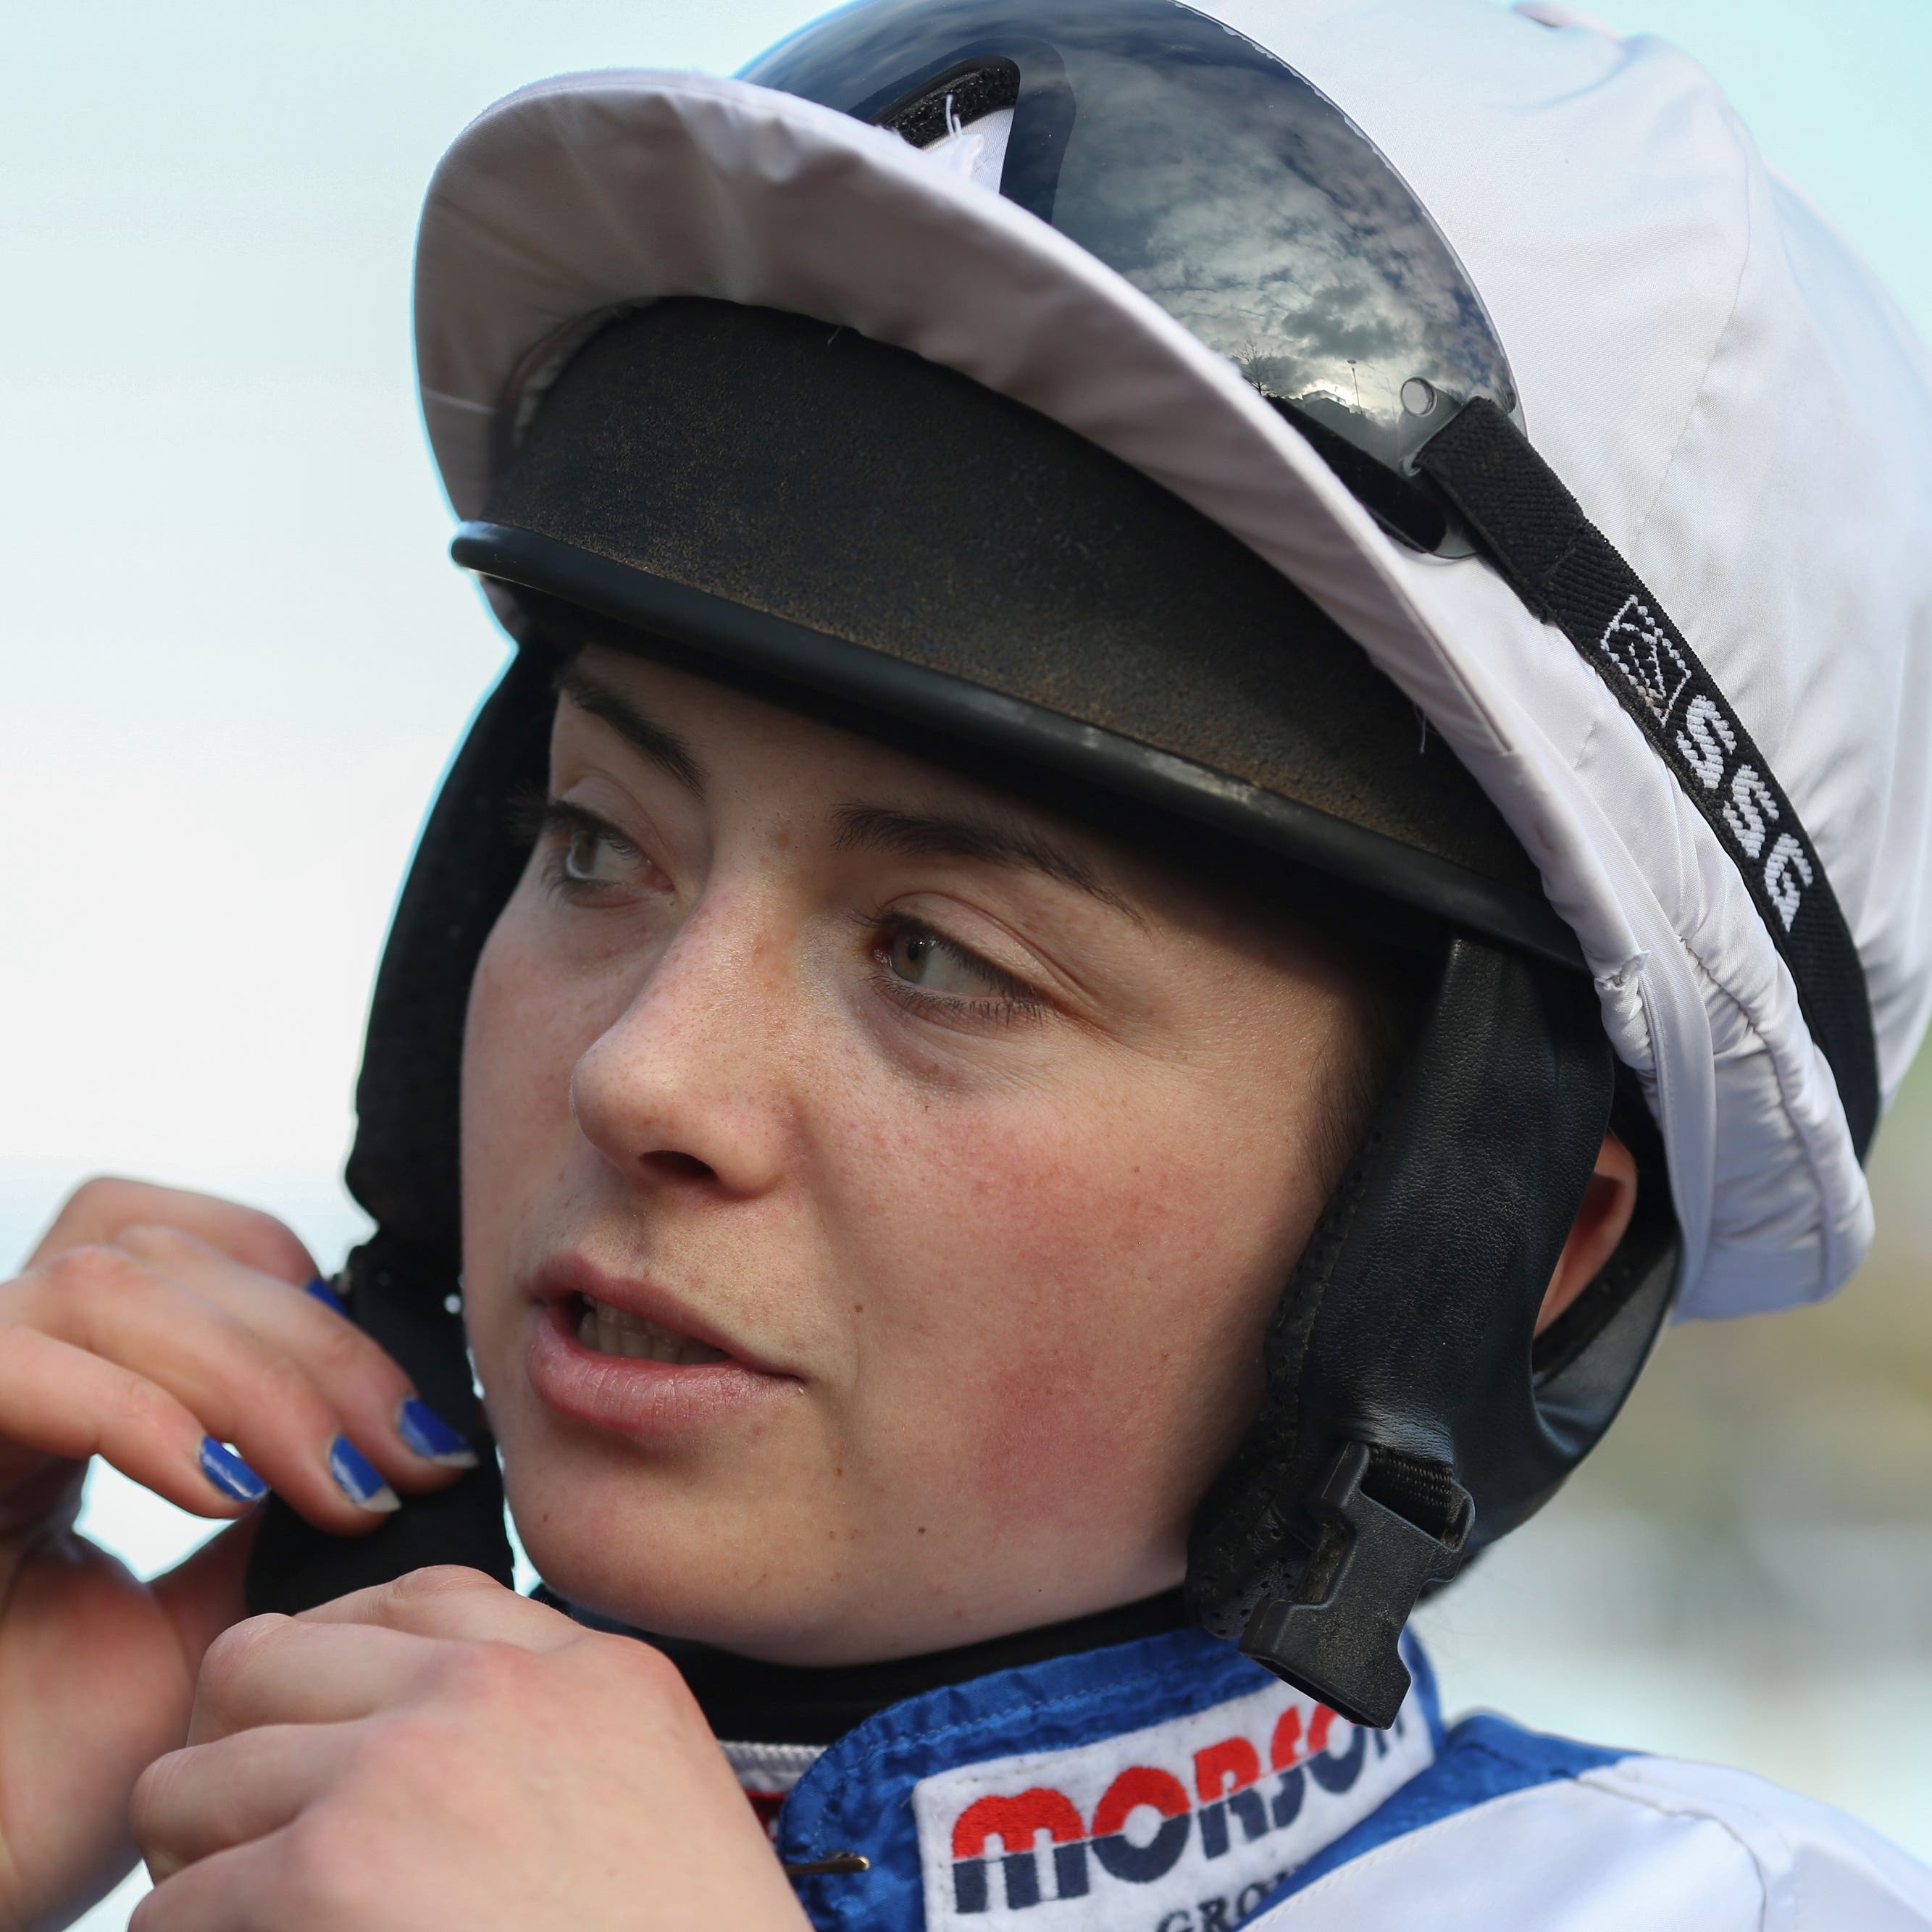 Bryony Frost celebrated the 100th winner of her career at Plumpton on Monday